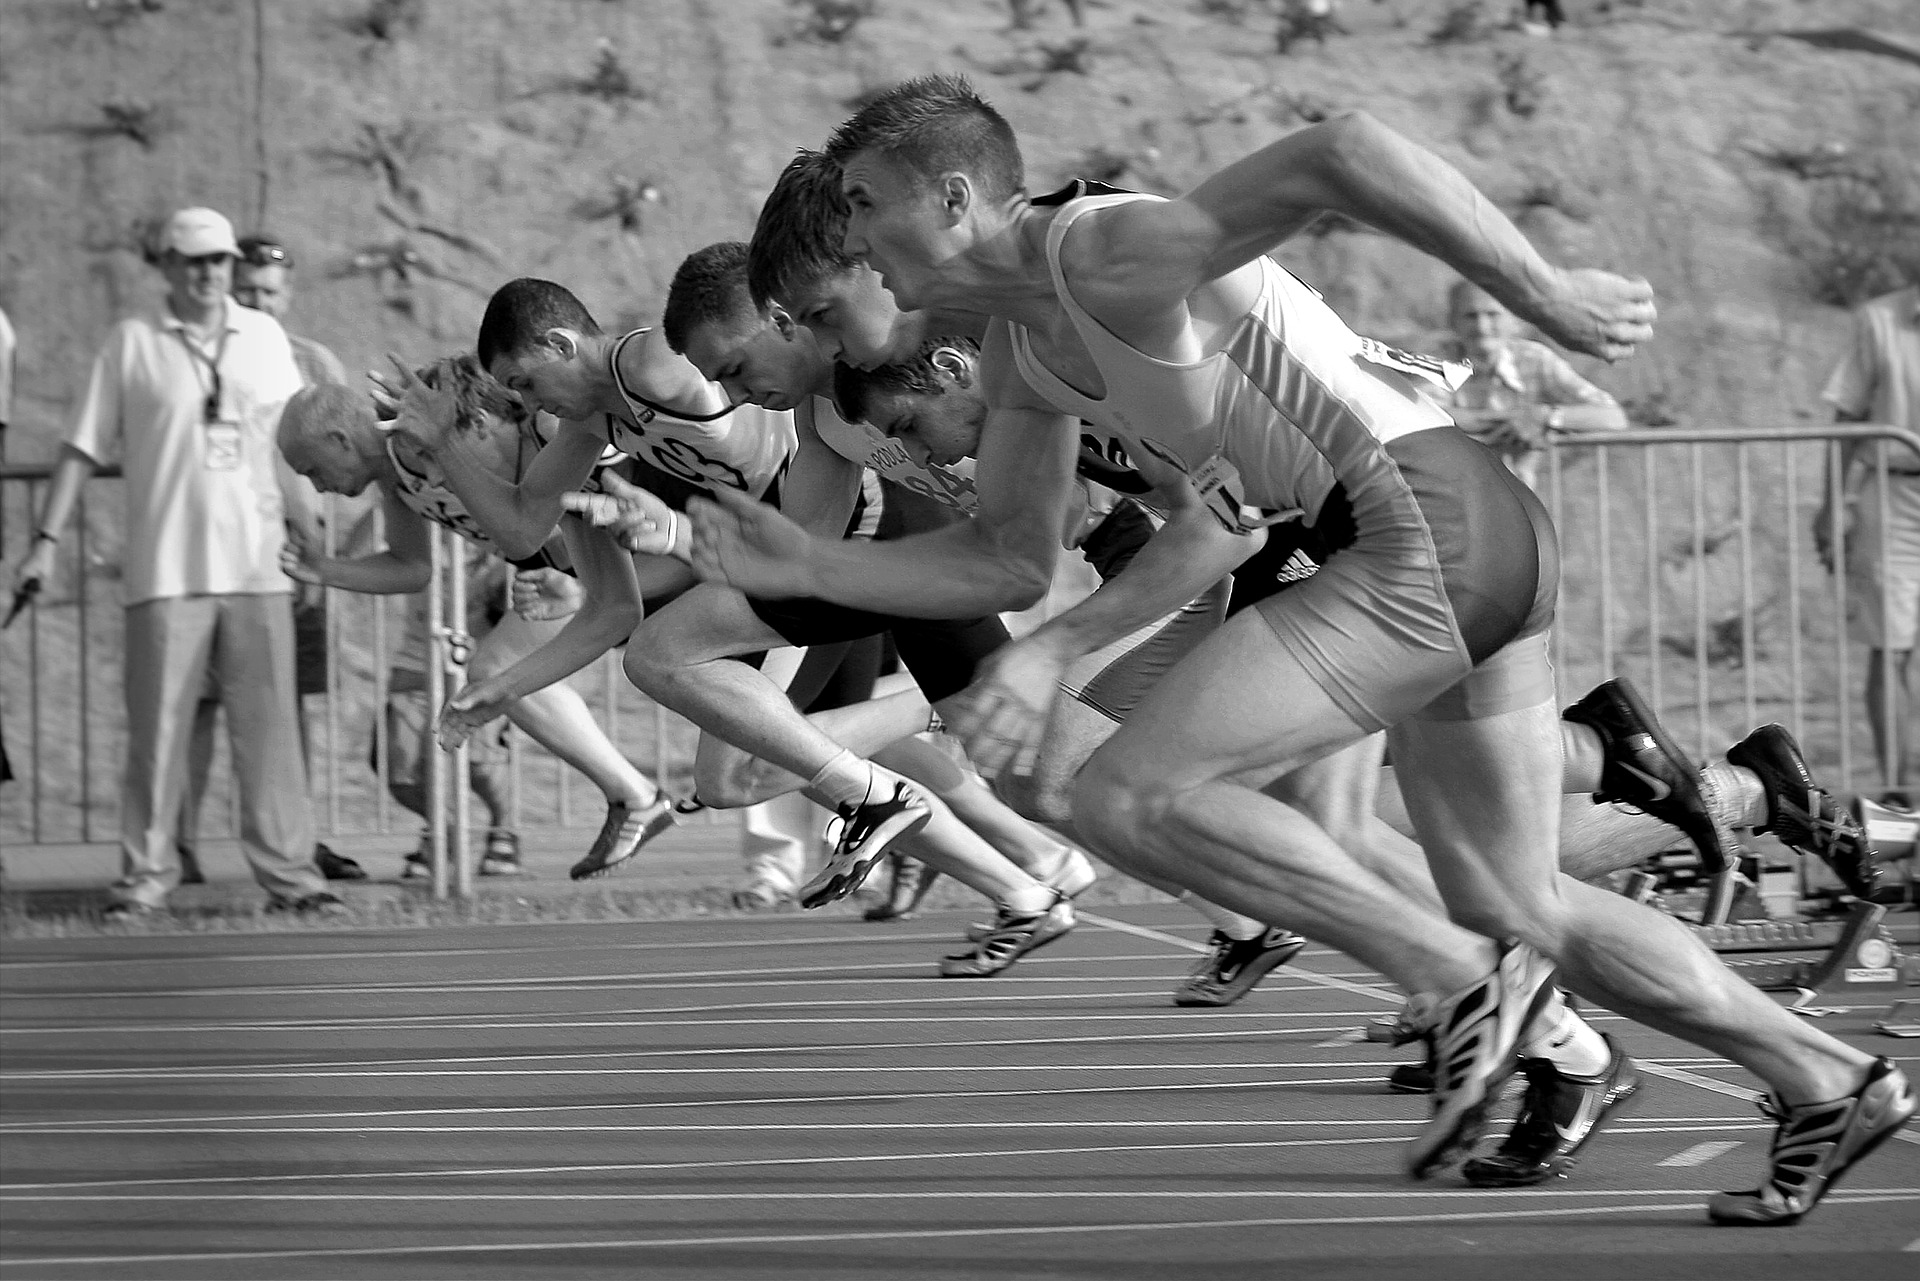 Though many may start a race...  Few have the fortitude to win it!